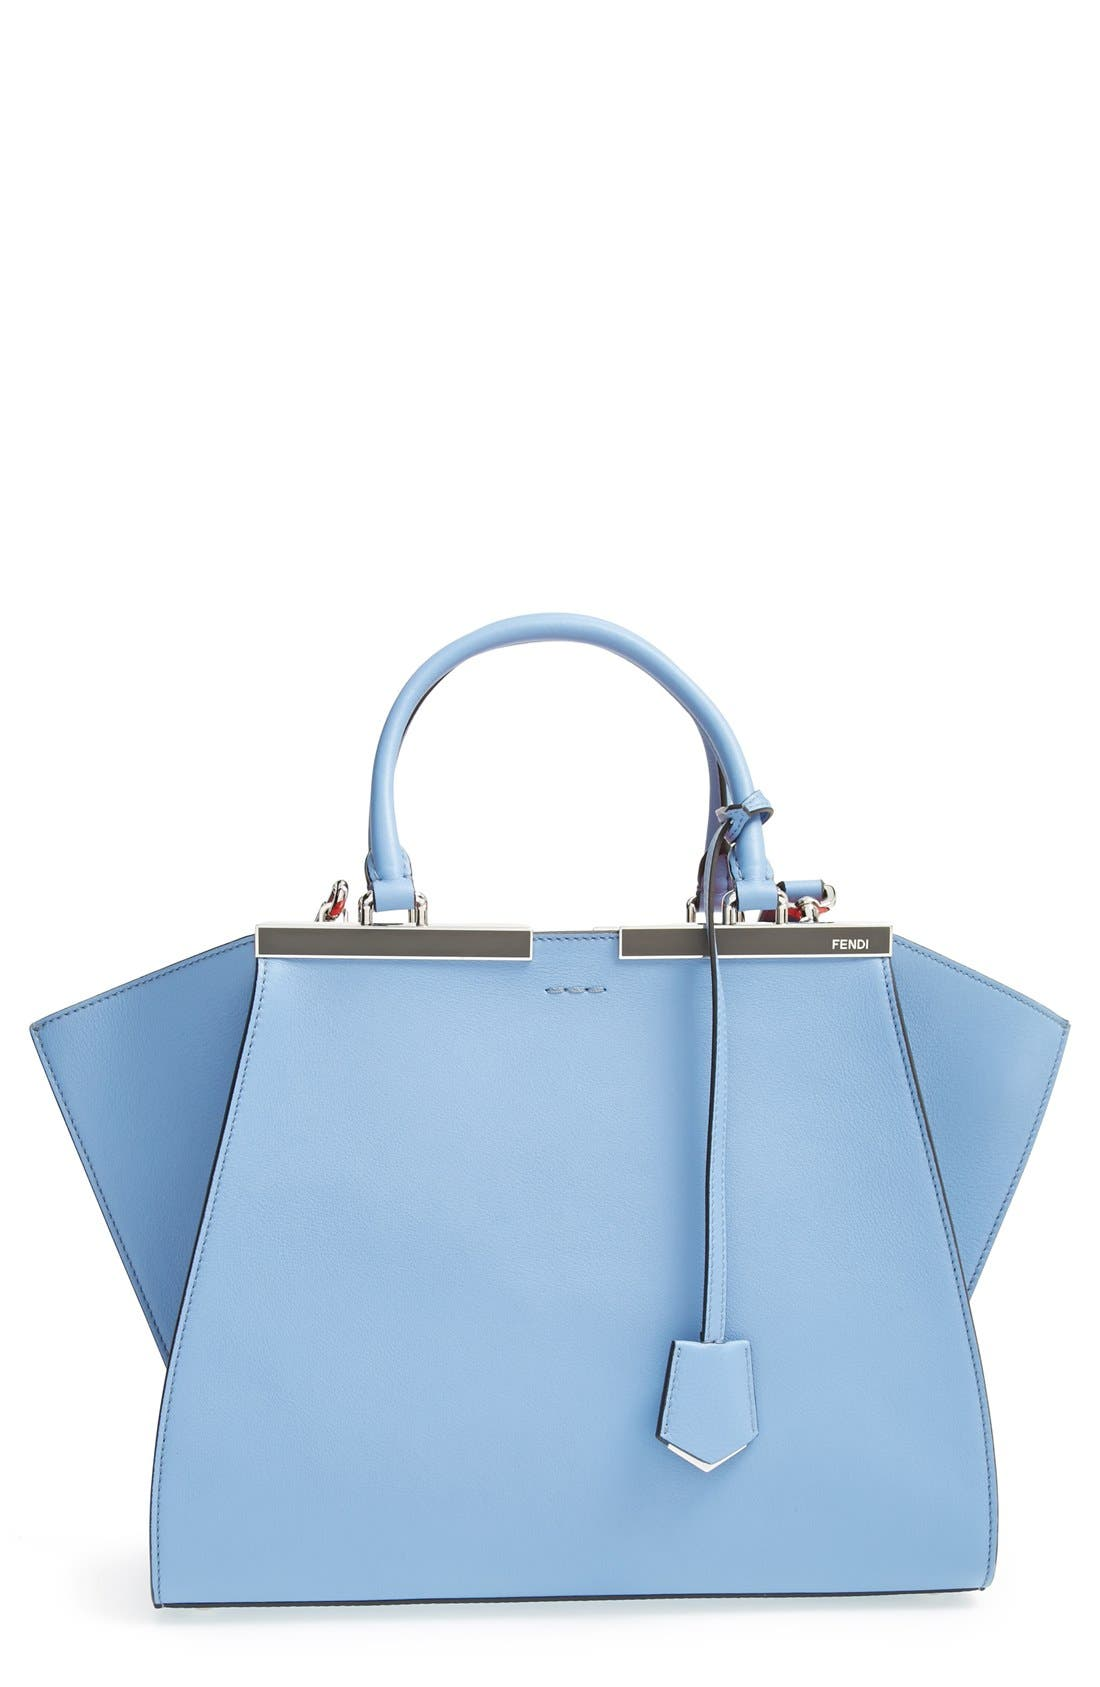 Main Image - Fendi '3Jours' Leather Shopper